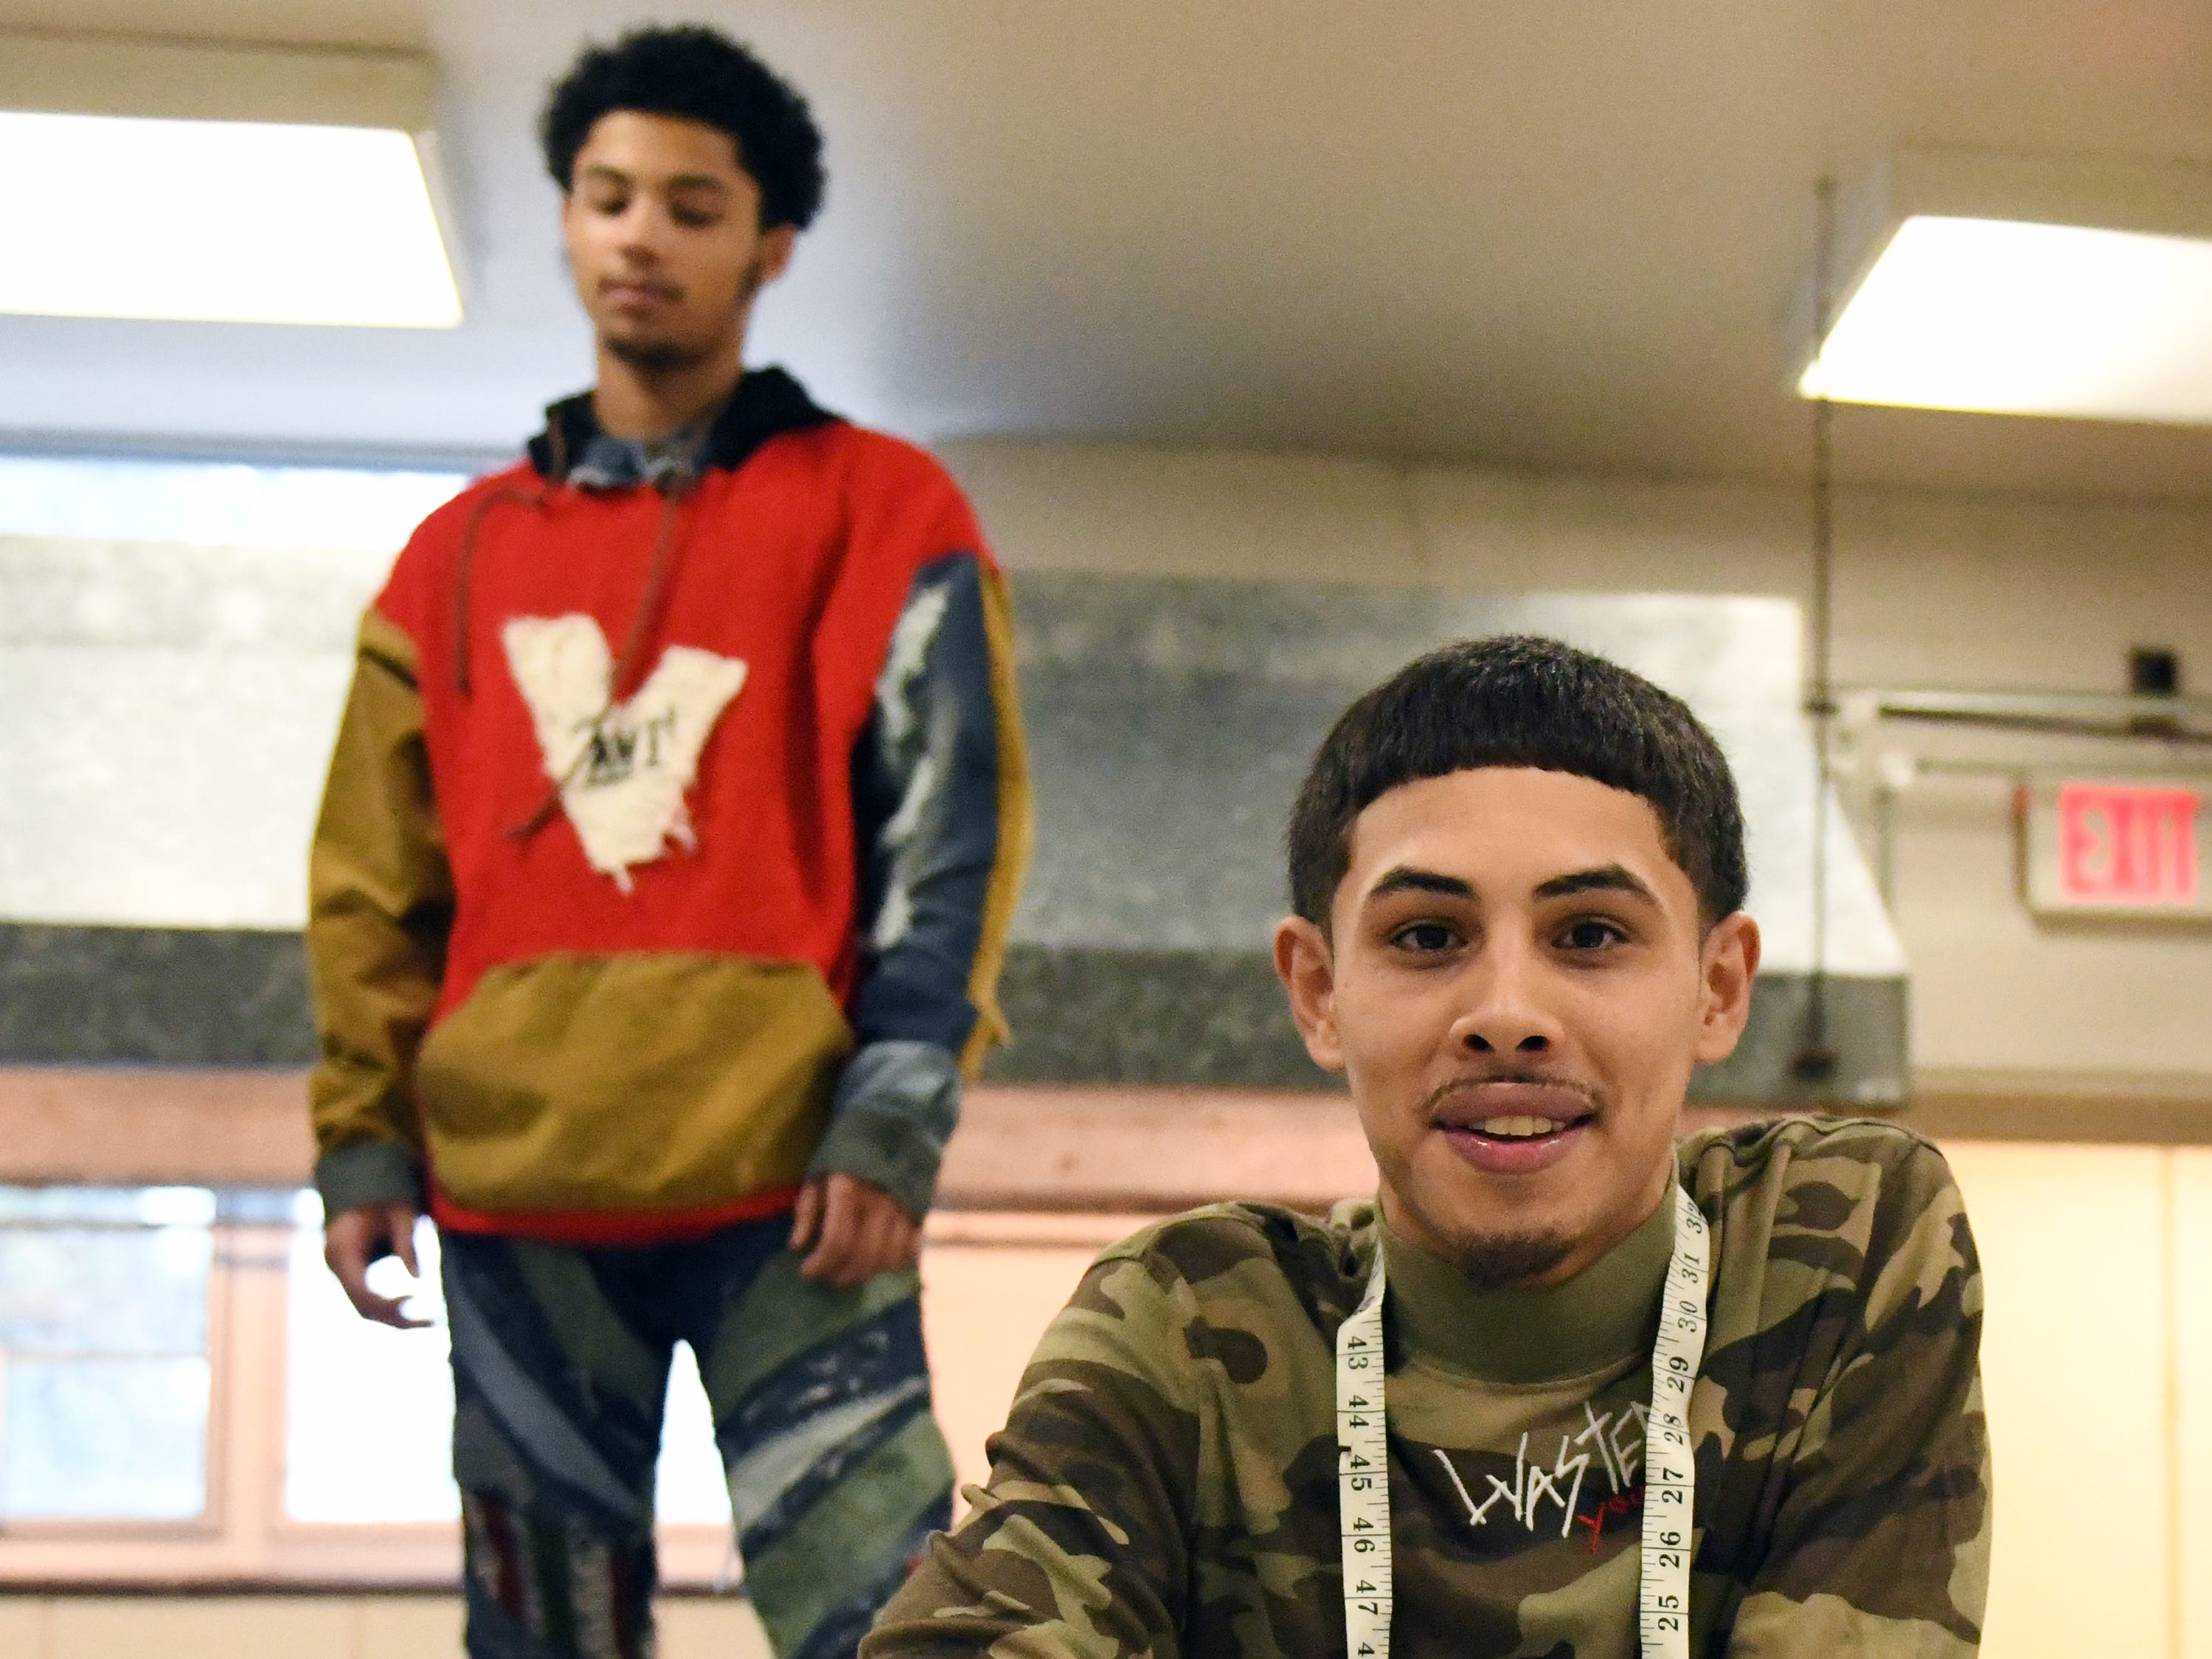 Fabricio Lobo, a Cunningham Academy student in Vineland, makes and sells his own clothing line called ANI. His friend Zae Bogan helps show off some of Lobo's designs at Cunningham Academy in Vineland on Thursday, Jan. 24, 2019